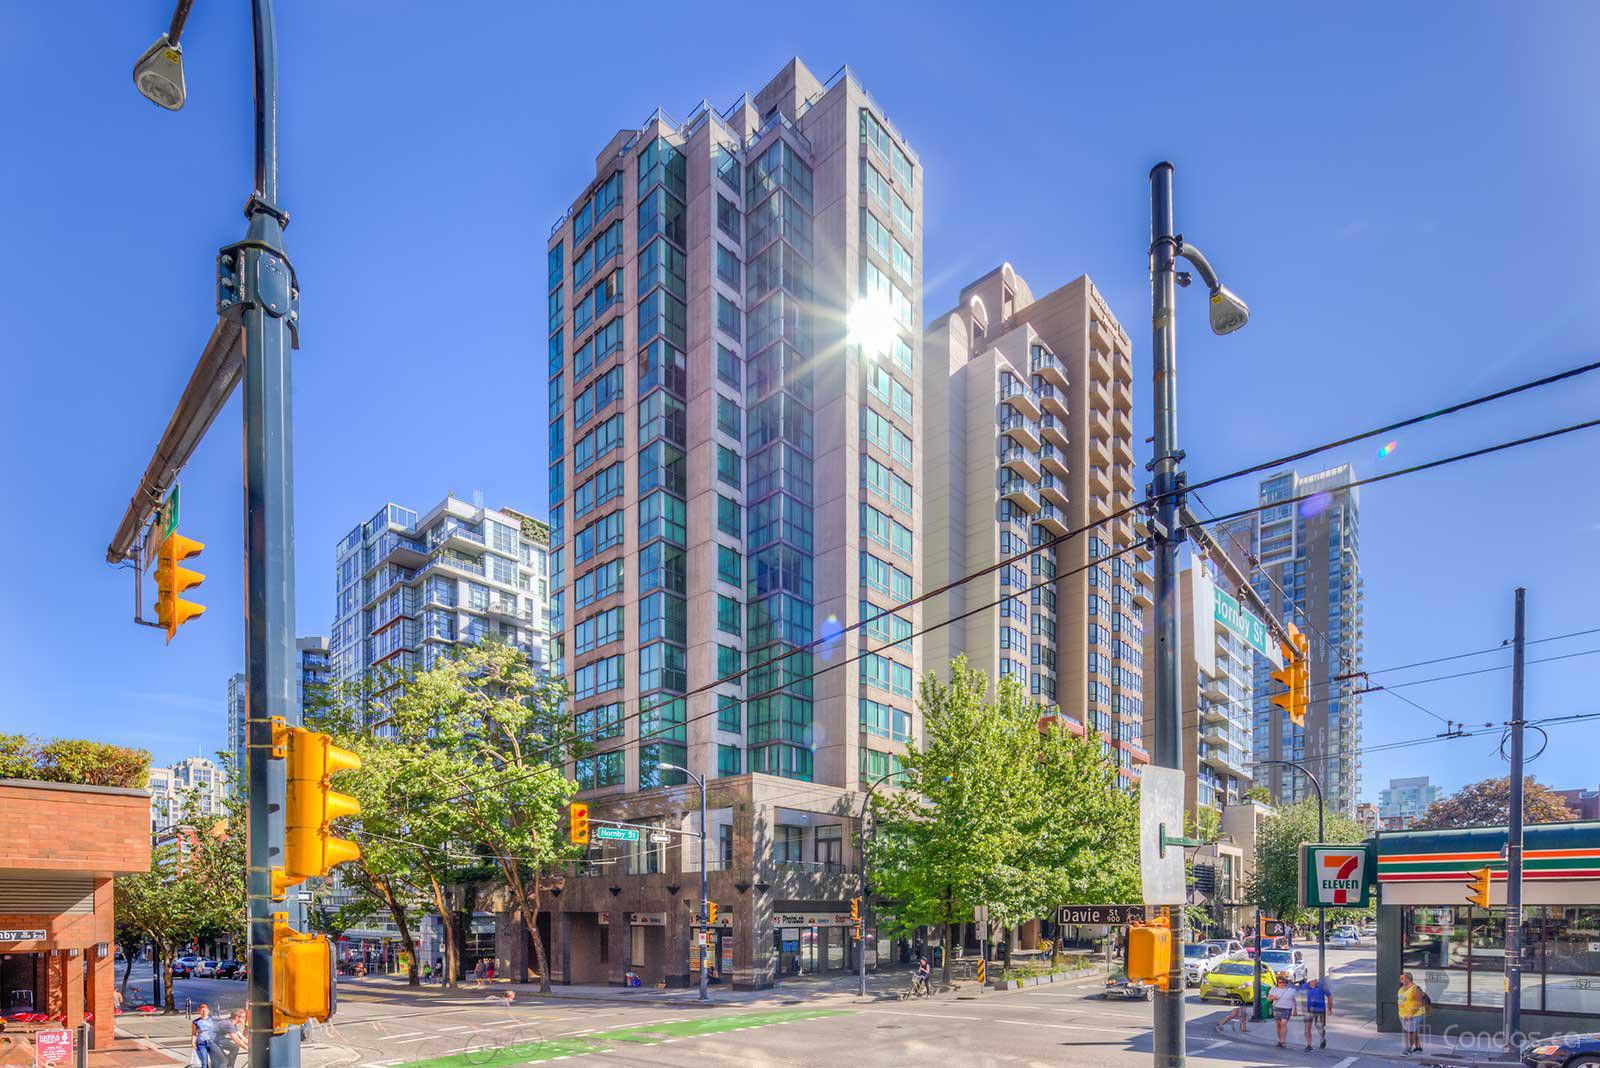 The Landis Hotel & Suites at 1200 Hornby St, Vancouver 0